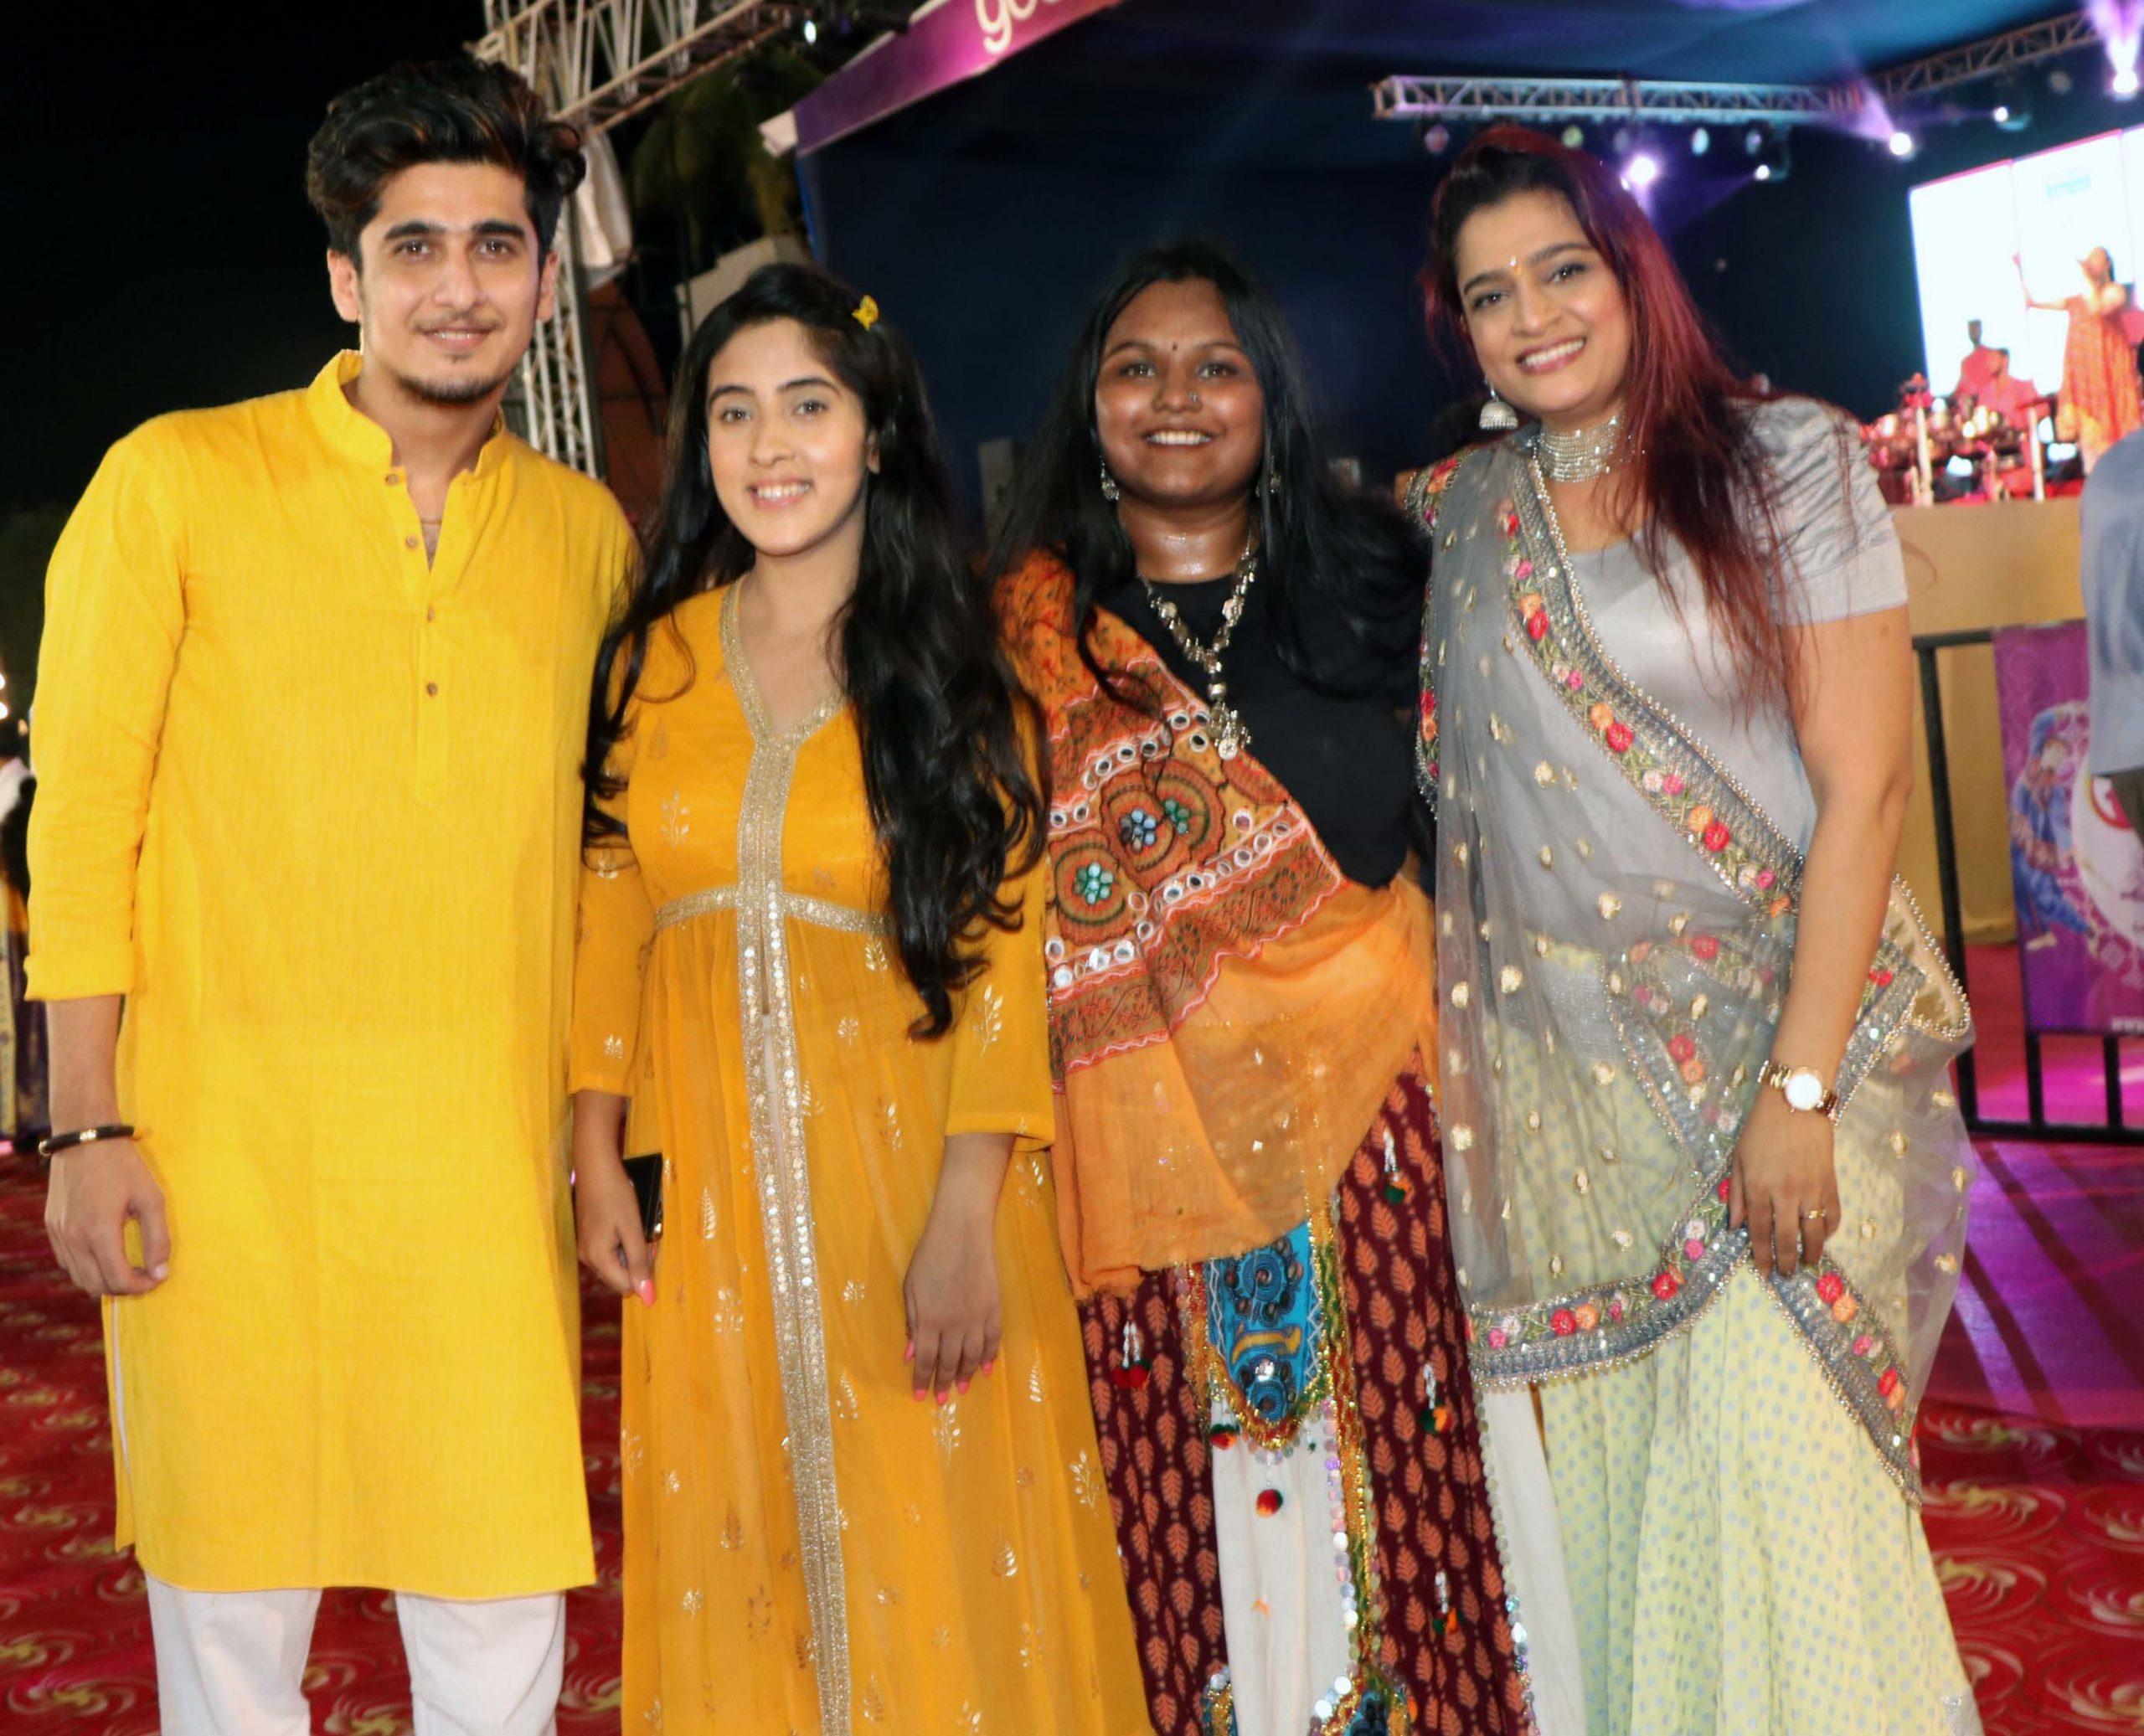 Celebs came attended GoCeleb Club Garba in Mumbai   Celebs came attended GoCeleb Club Garba in Mumbai bhavin bhanushalisameeksha suddrhuvi shah ekta jain scaled